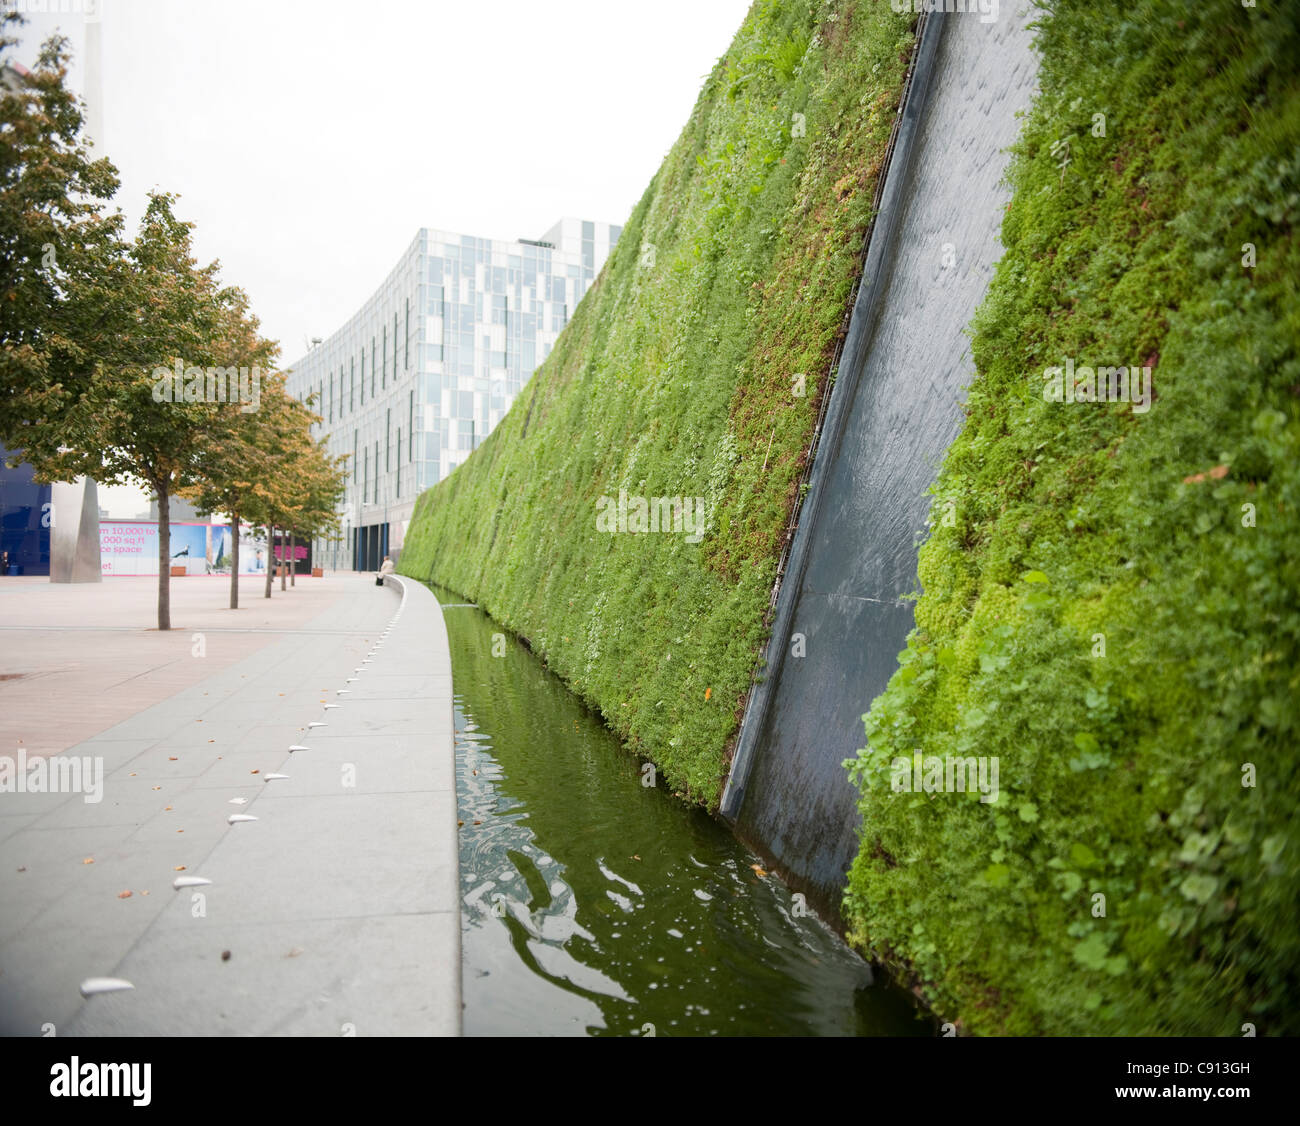 There Is A Large Living Wall Planted With Grass And Plants ...